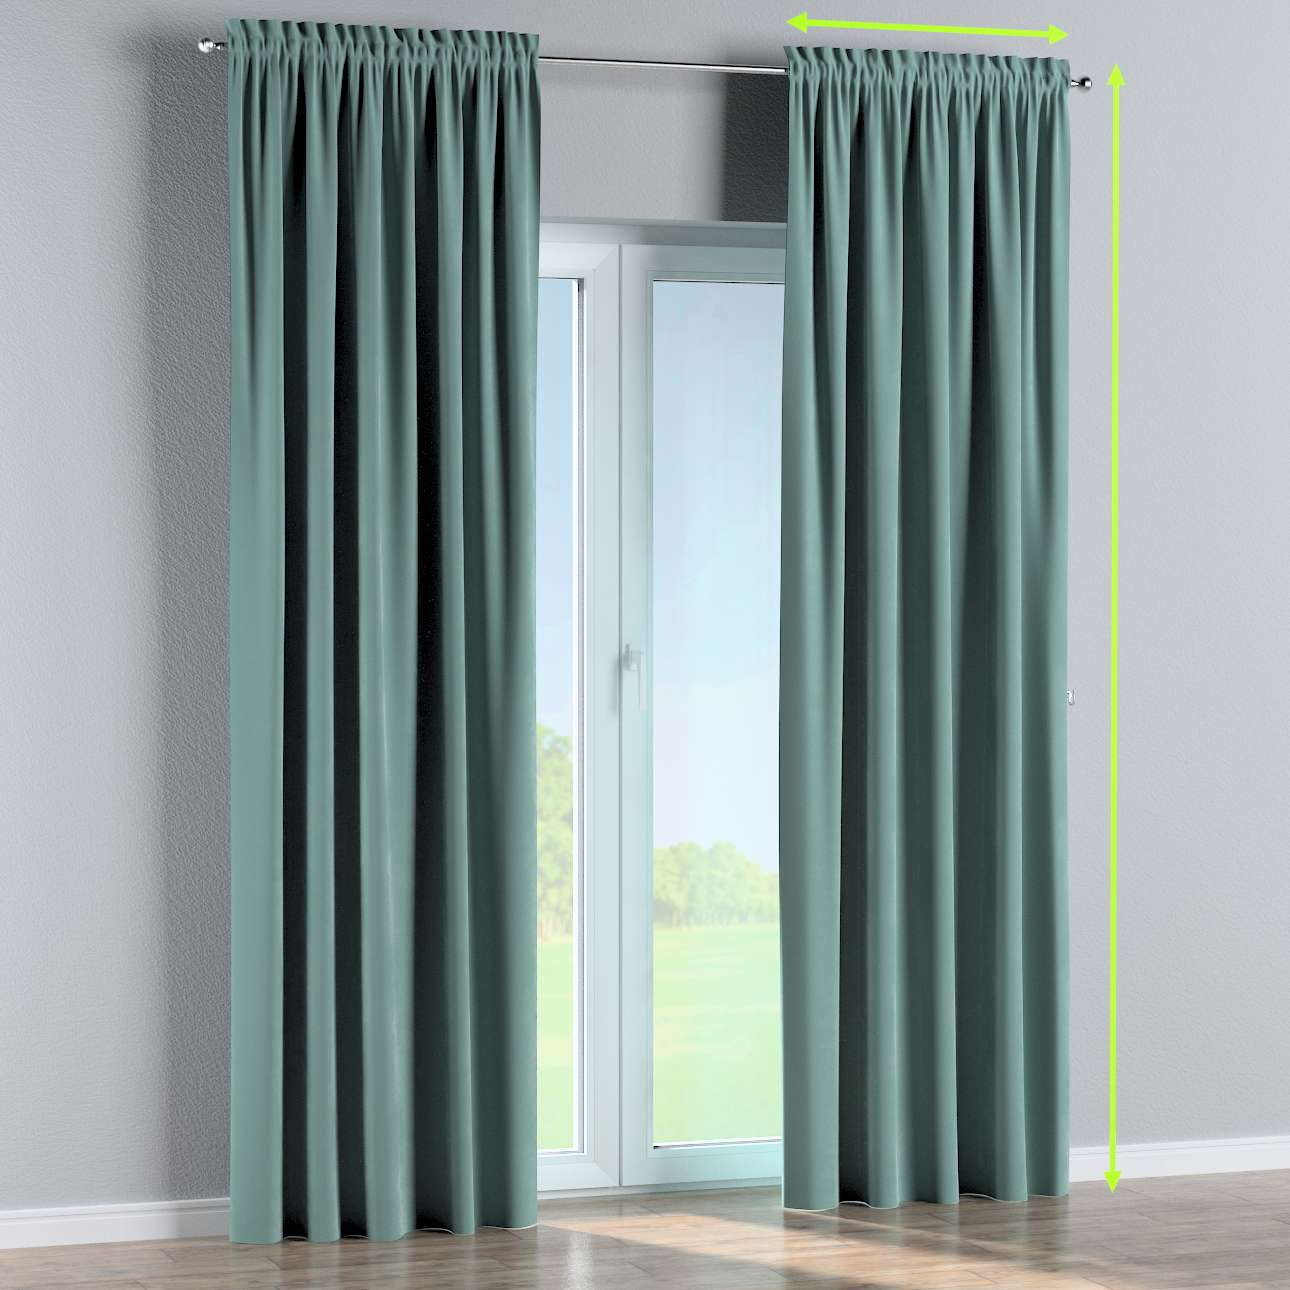 Slot and frill lined curtains in collection Velvet, fabric: 704-18